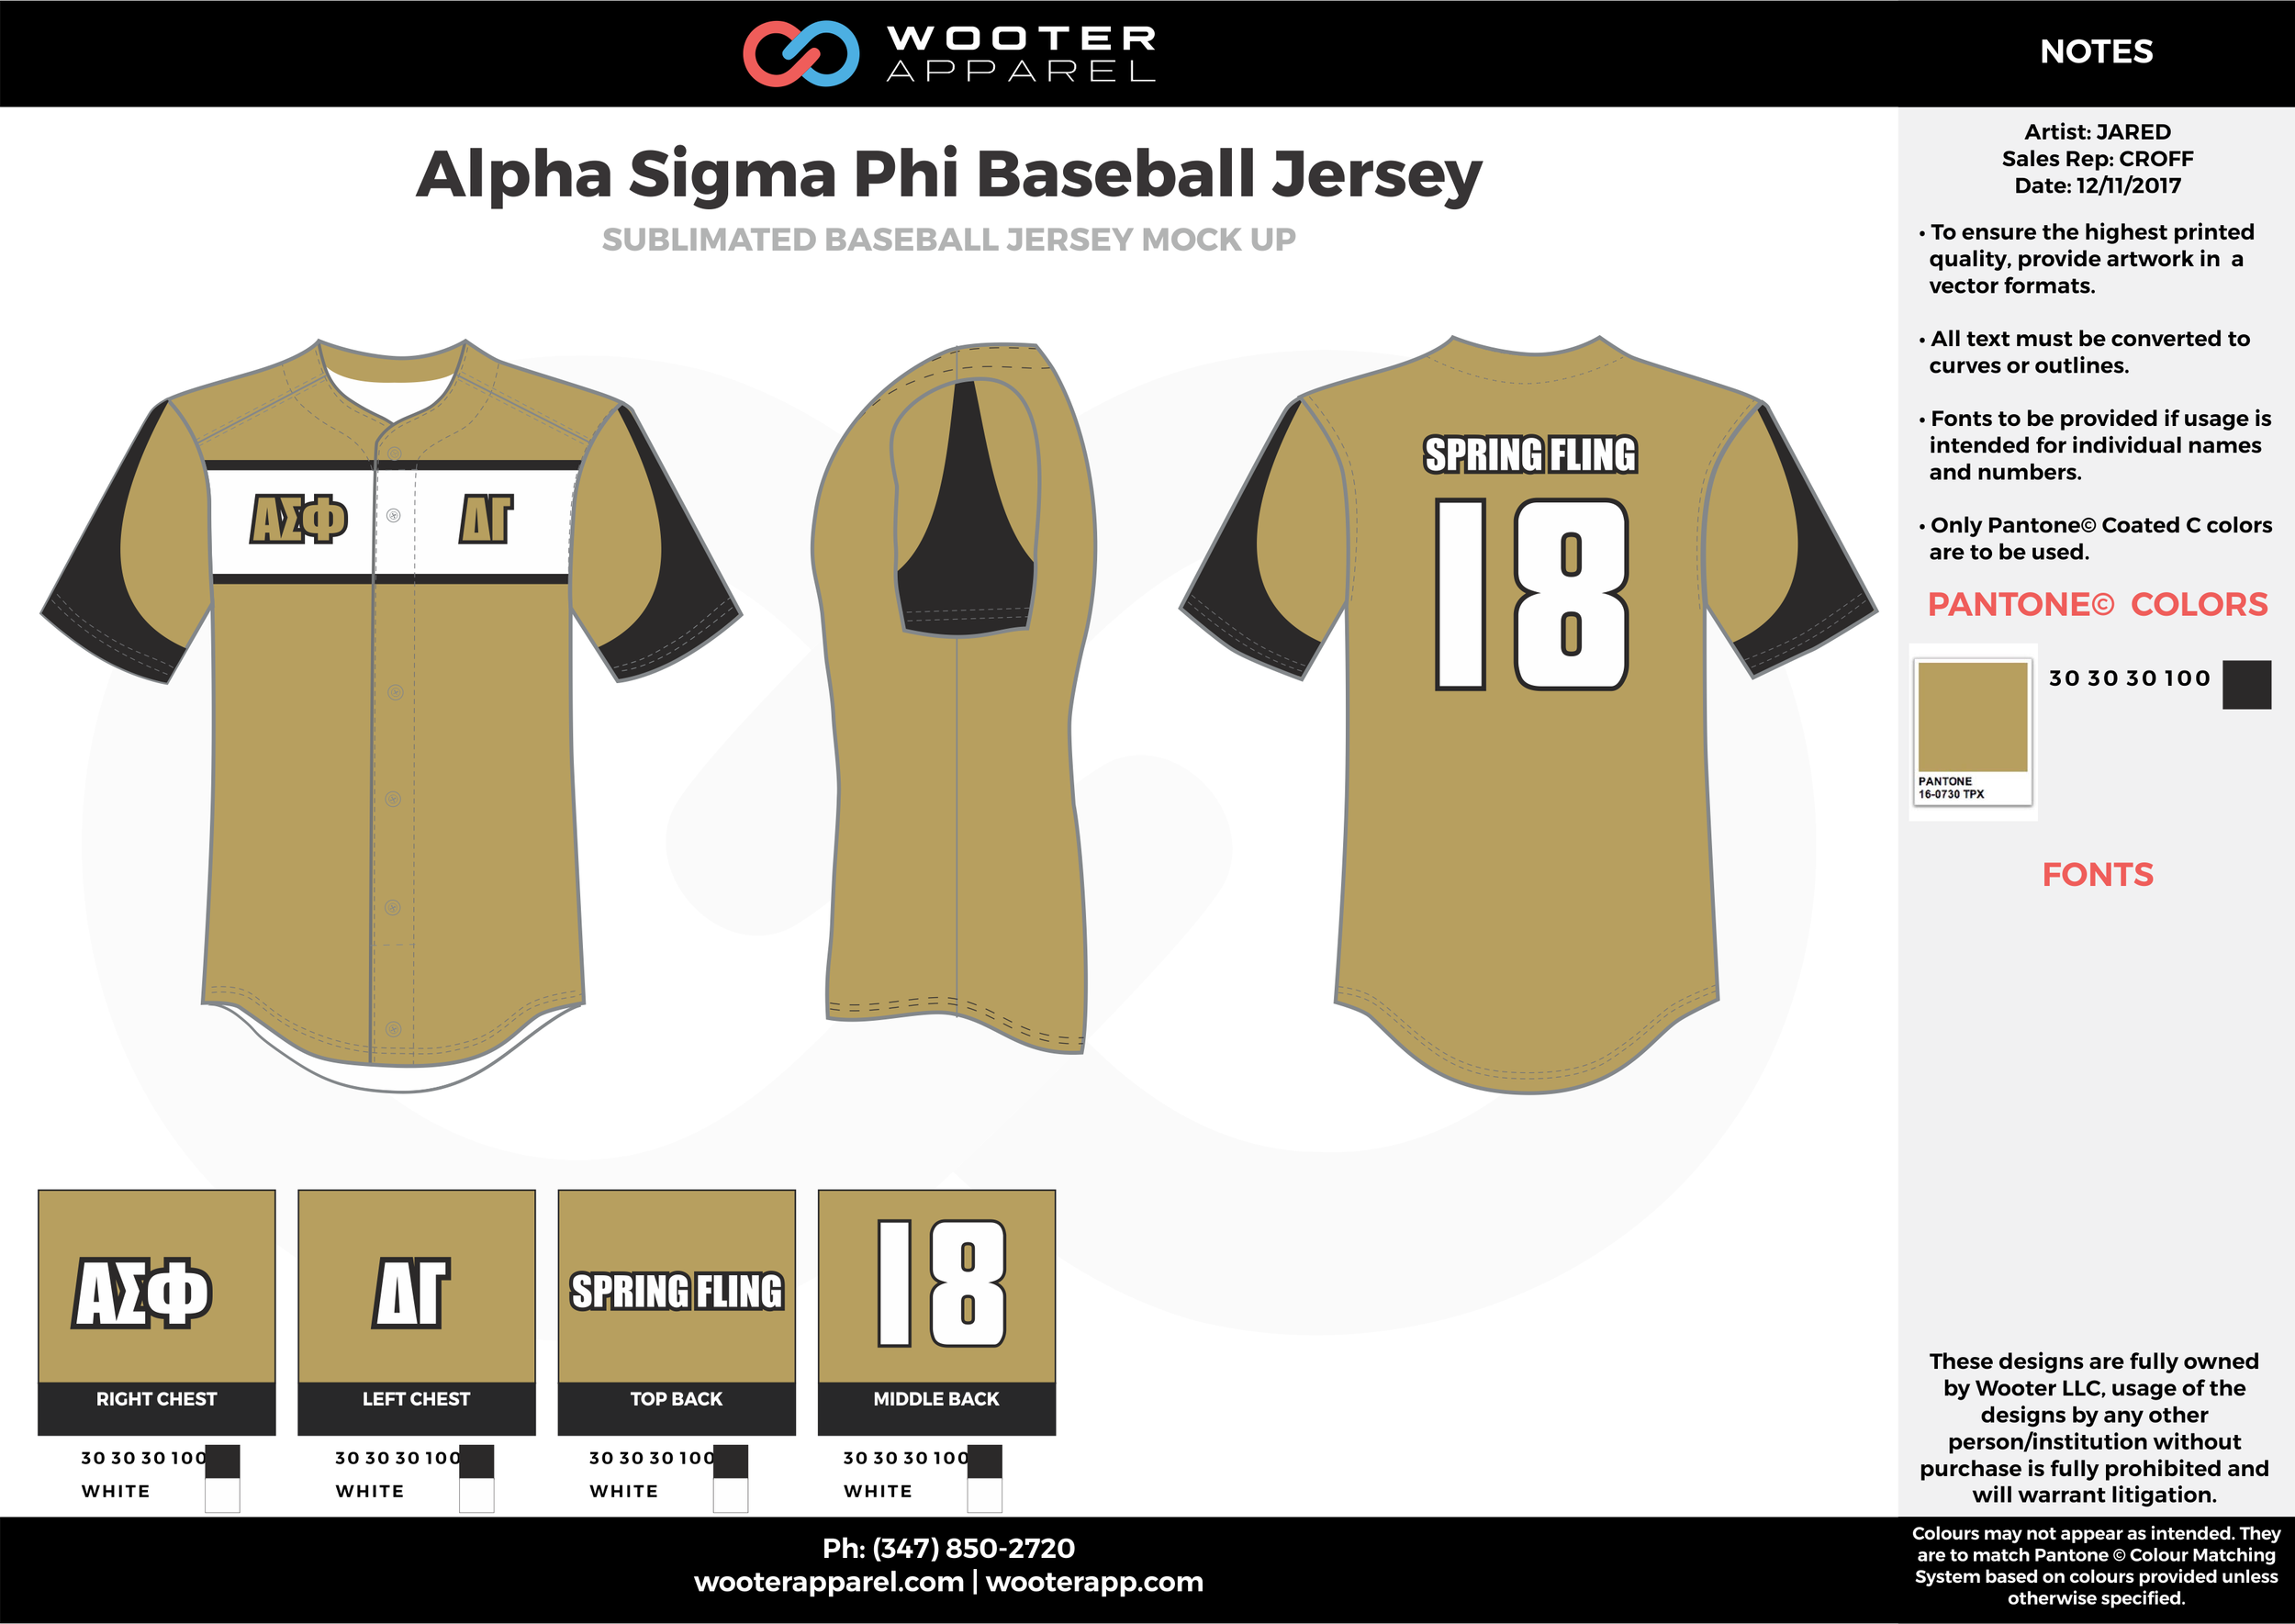 ALPHA SIGMA PHI khaki black white baseball uniforms jerseys top